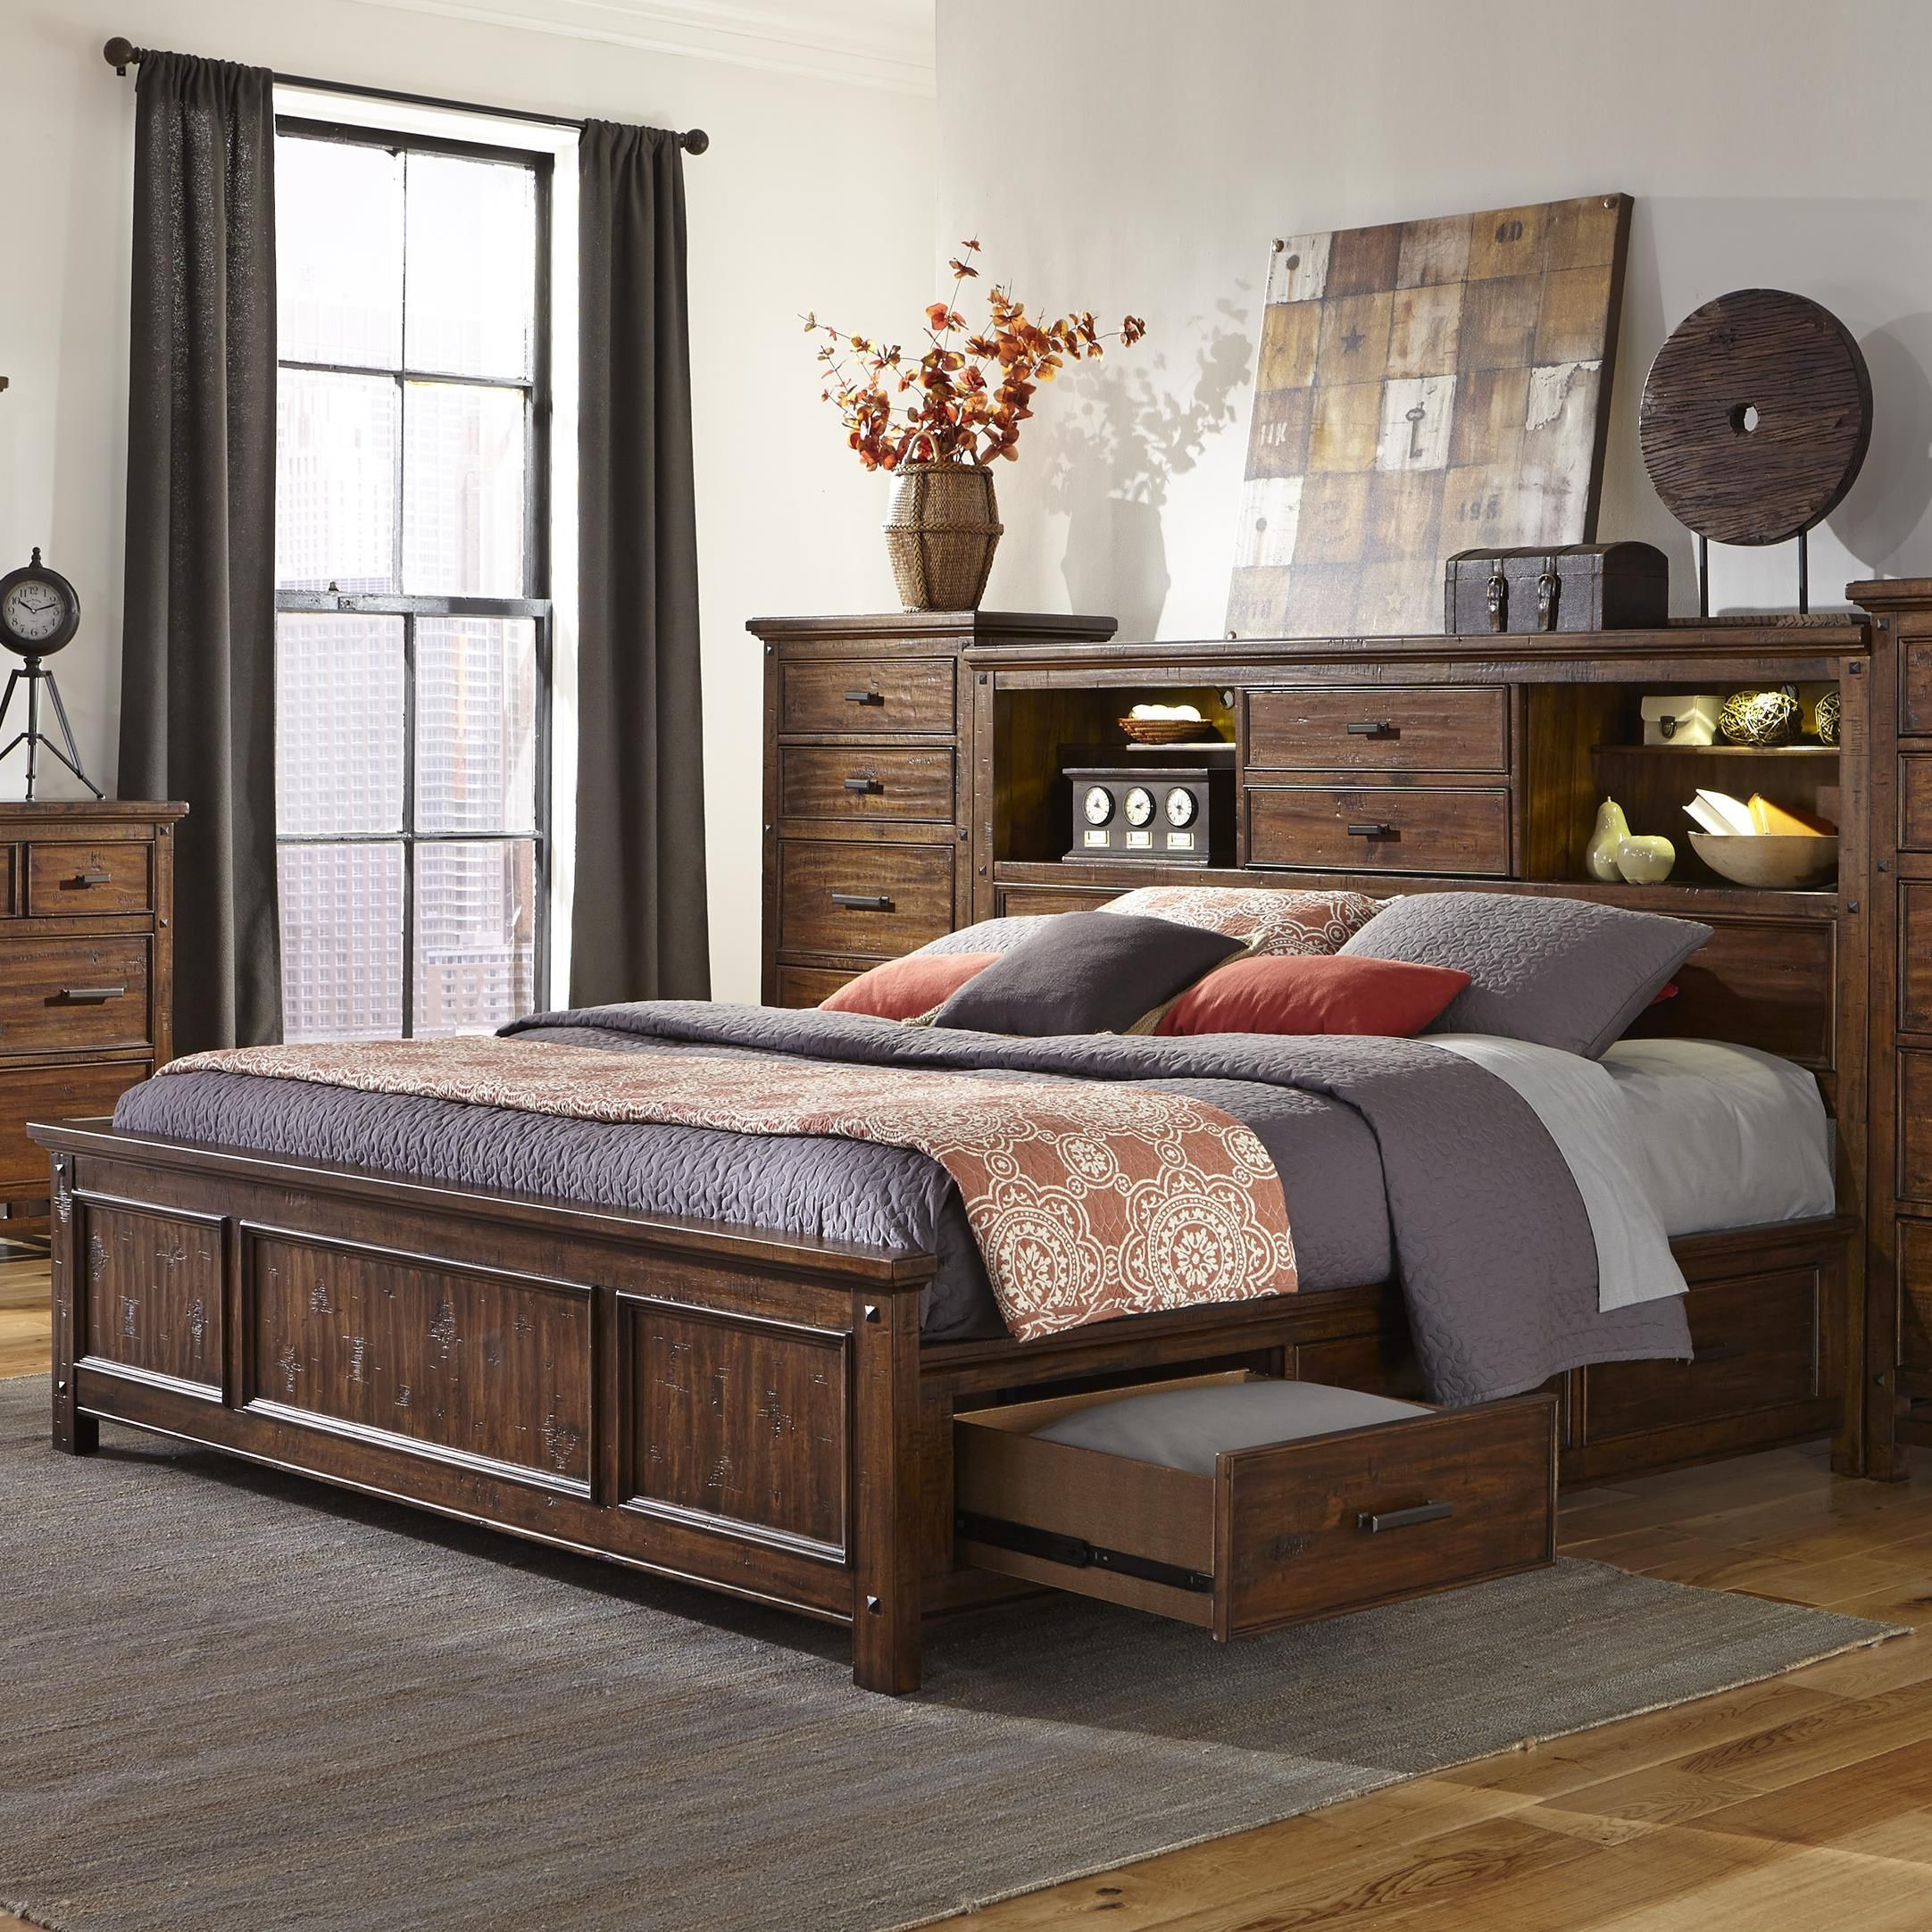 Wolf creek queen bookcase bed with storage by intercon - Bedroom furniture bookcase headboard ...